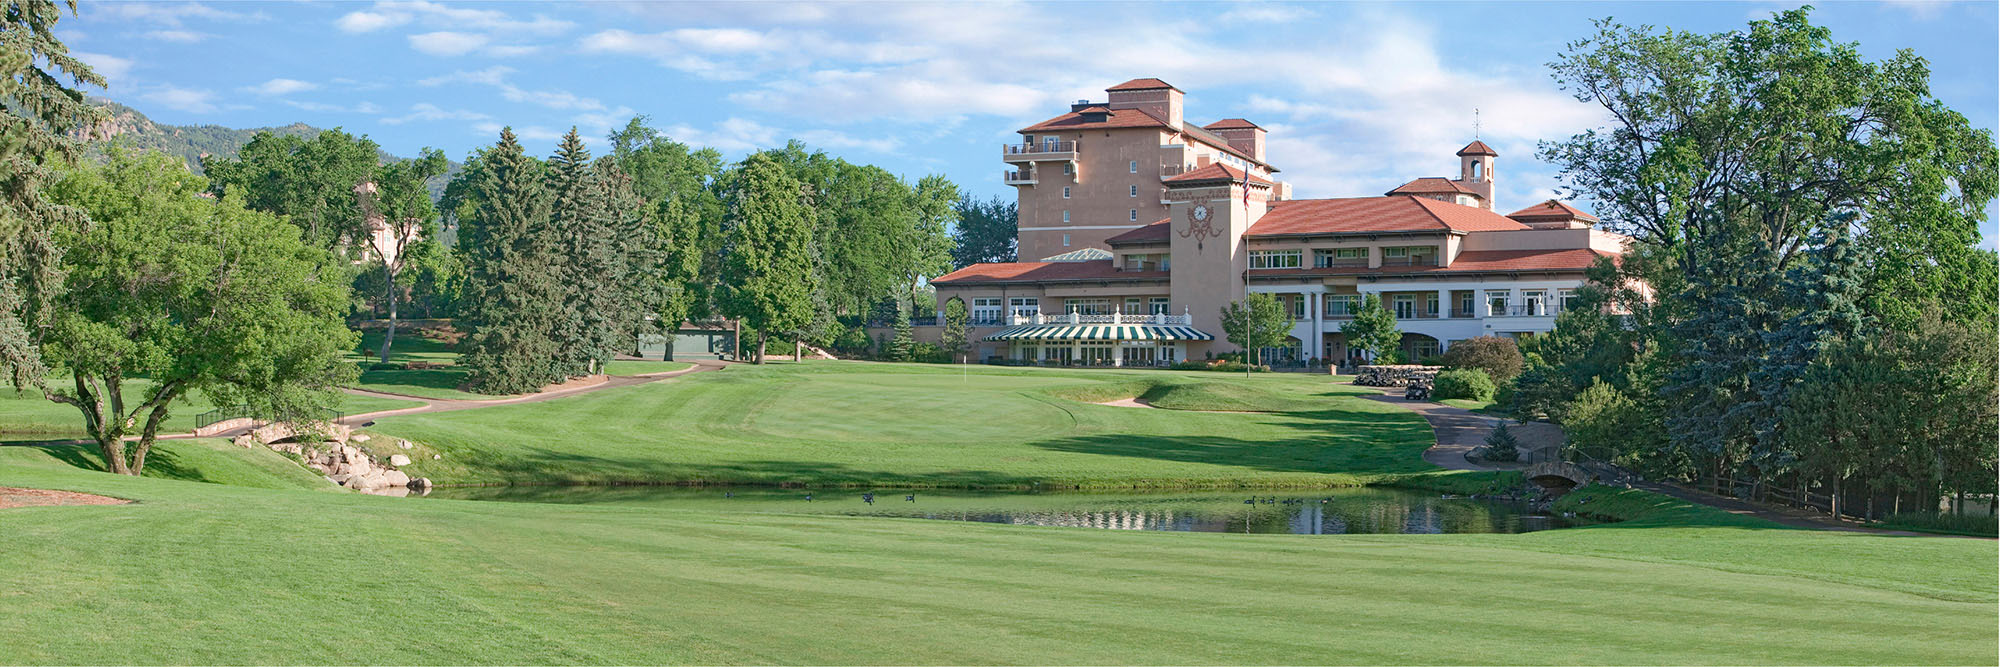 Golf Course Image - Broadmoor East No. 18